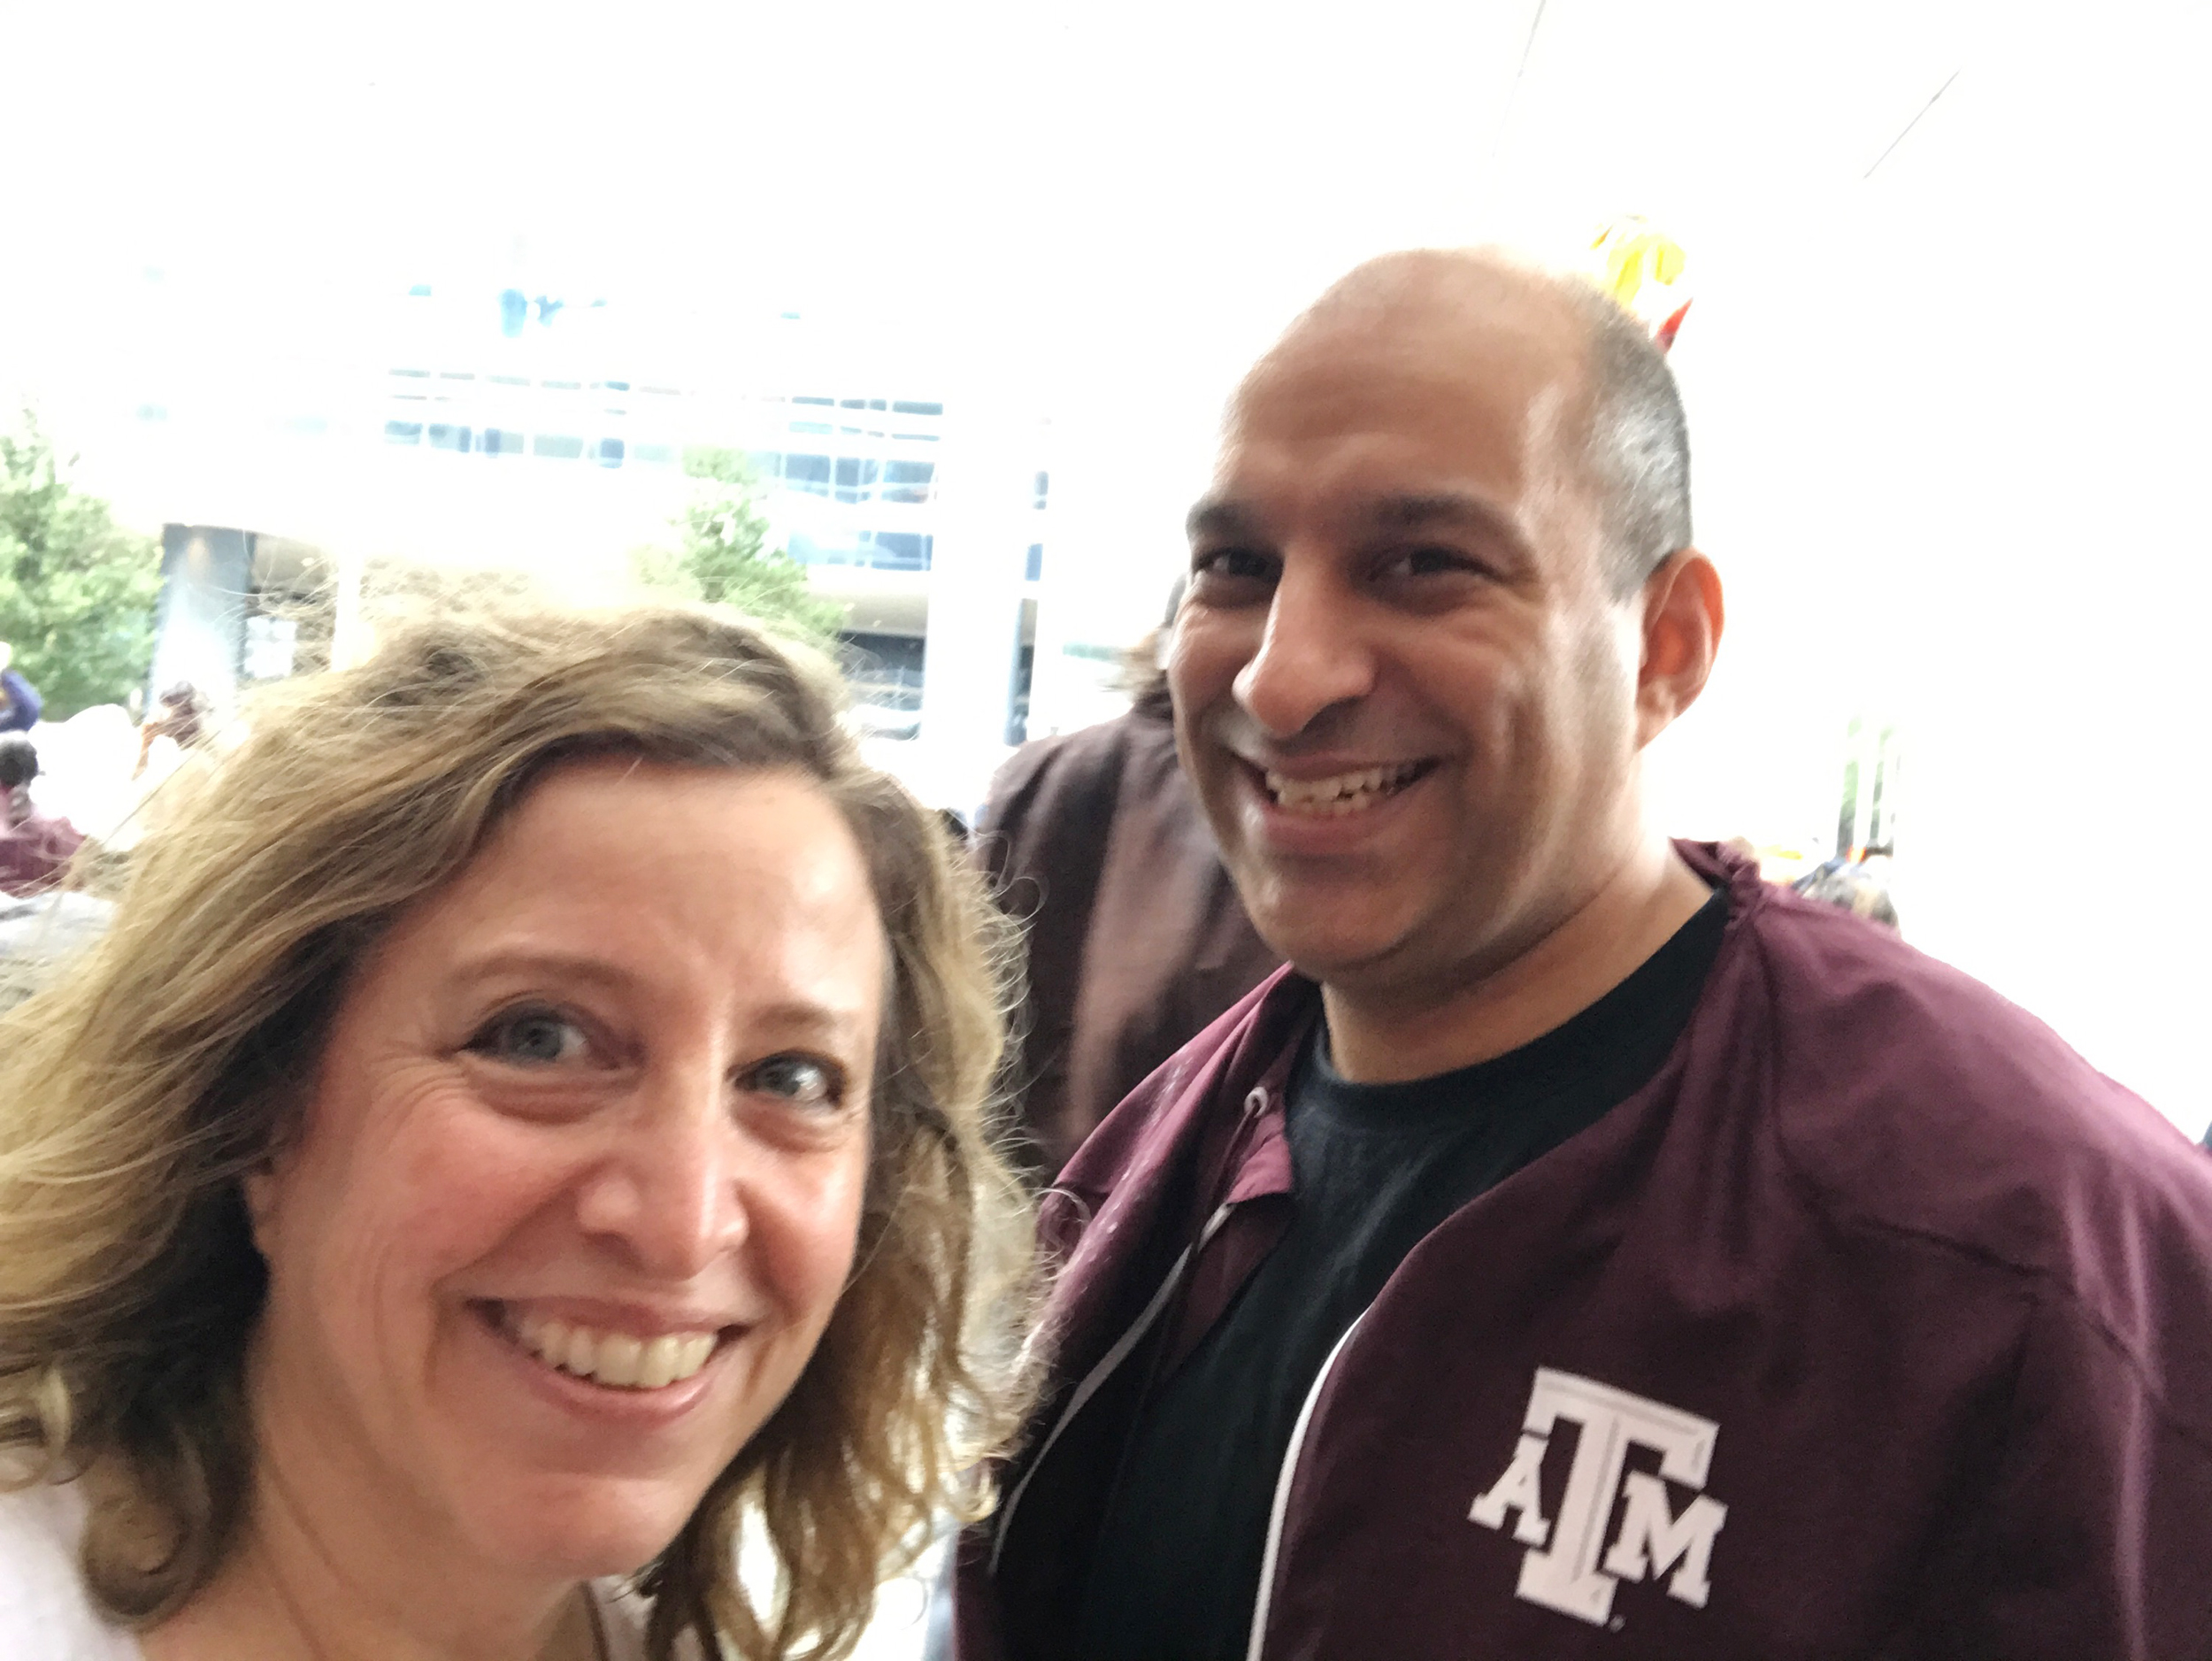 Image: Houston attorney and resident Beto Cardenas and fellow volunteer Karen Penner have been helping out at Houston's convention center